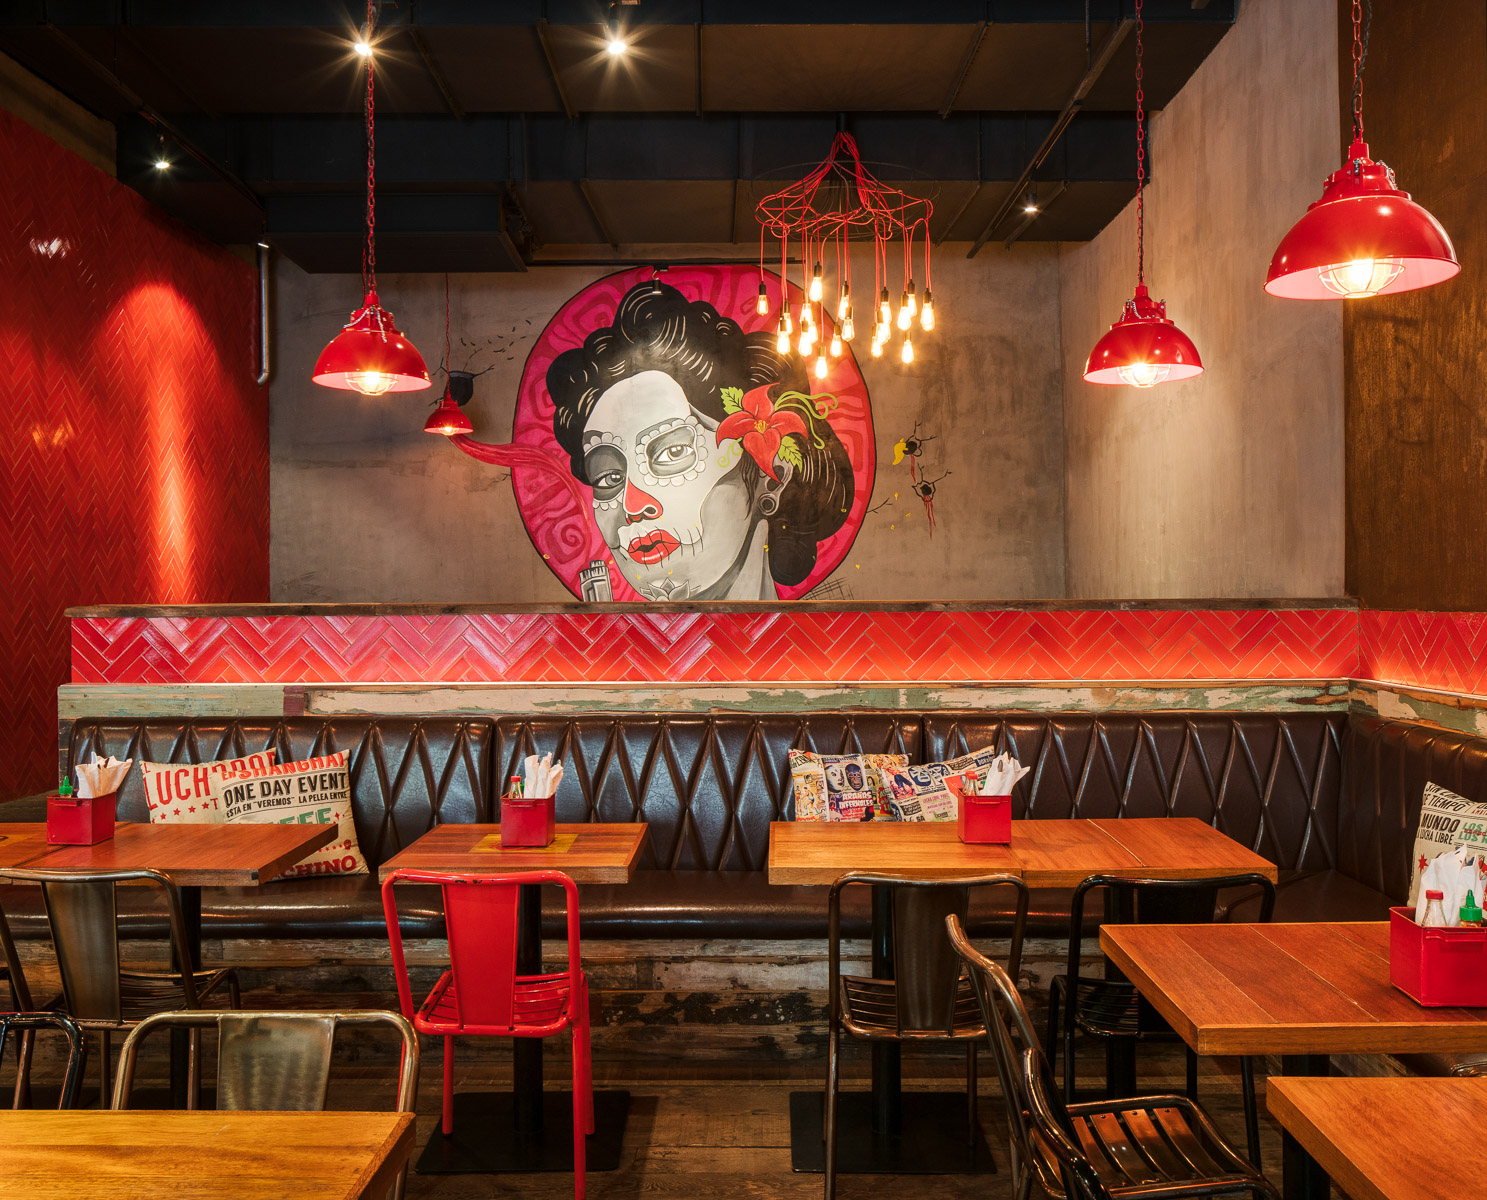 El Santo, Shanghai Mexican restaurant, by hcreates interior design